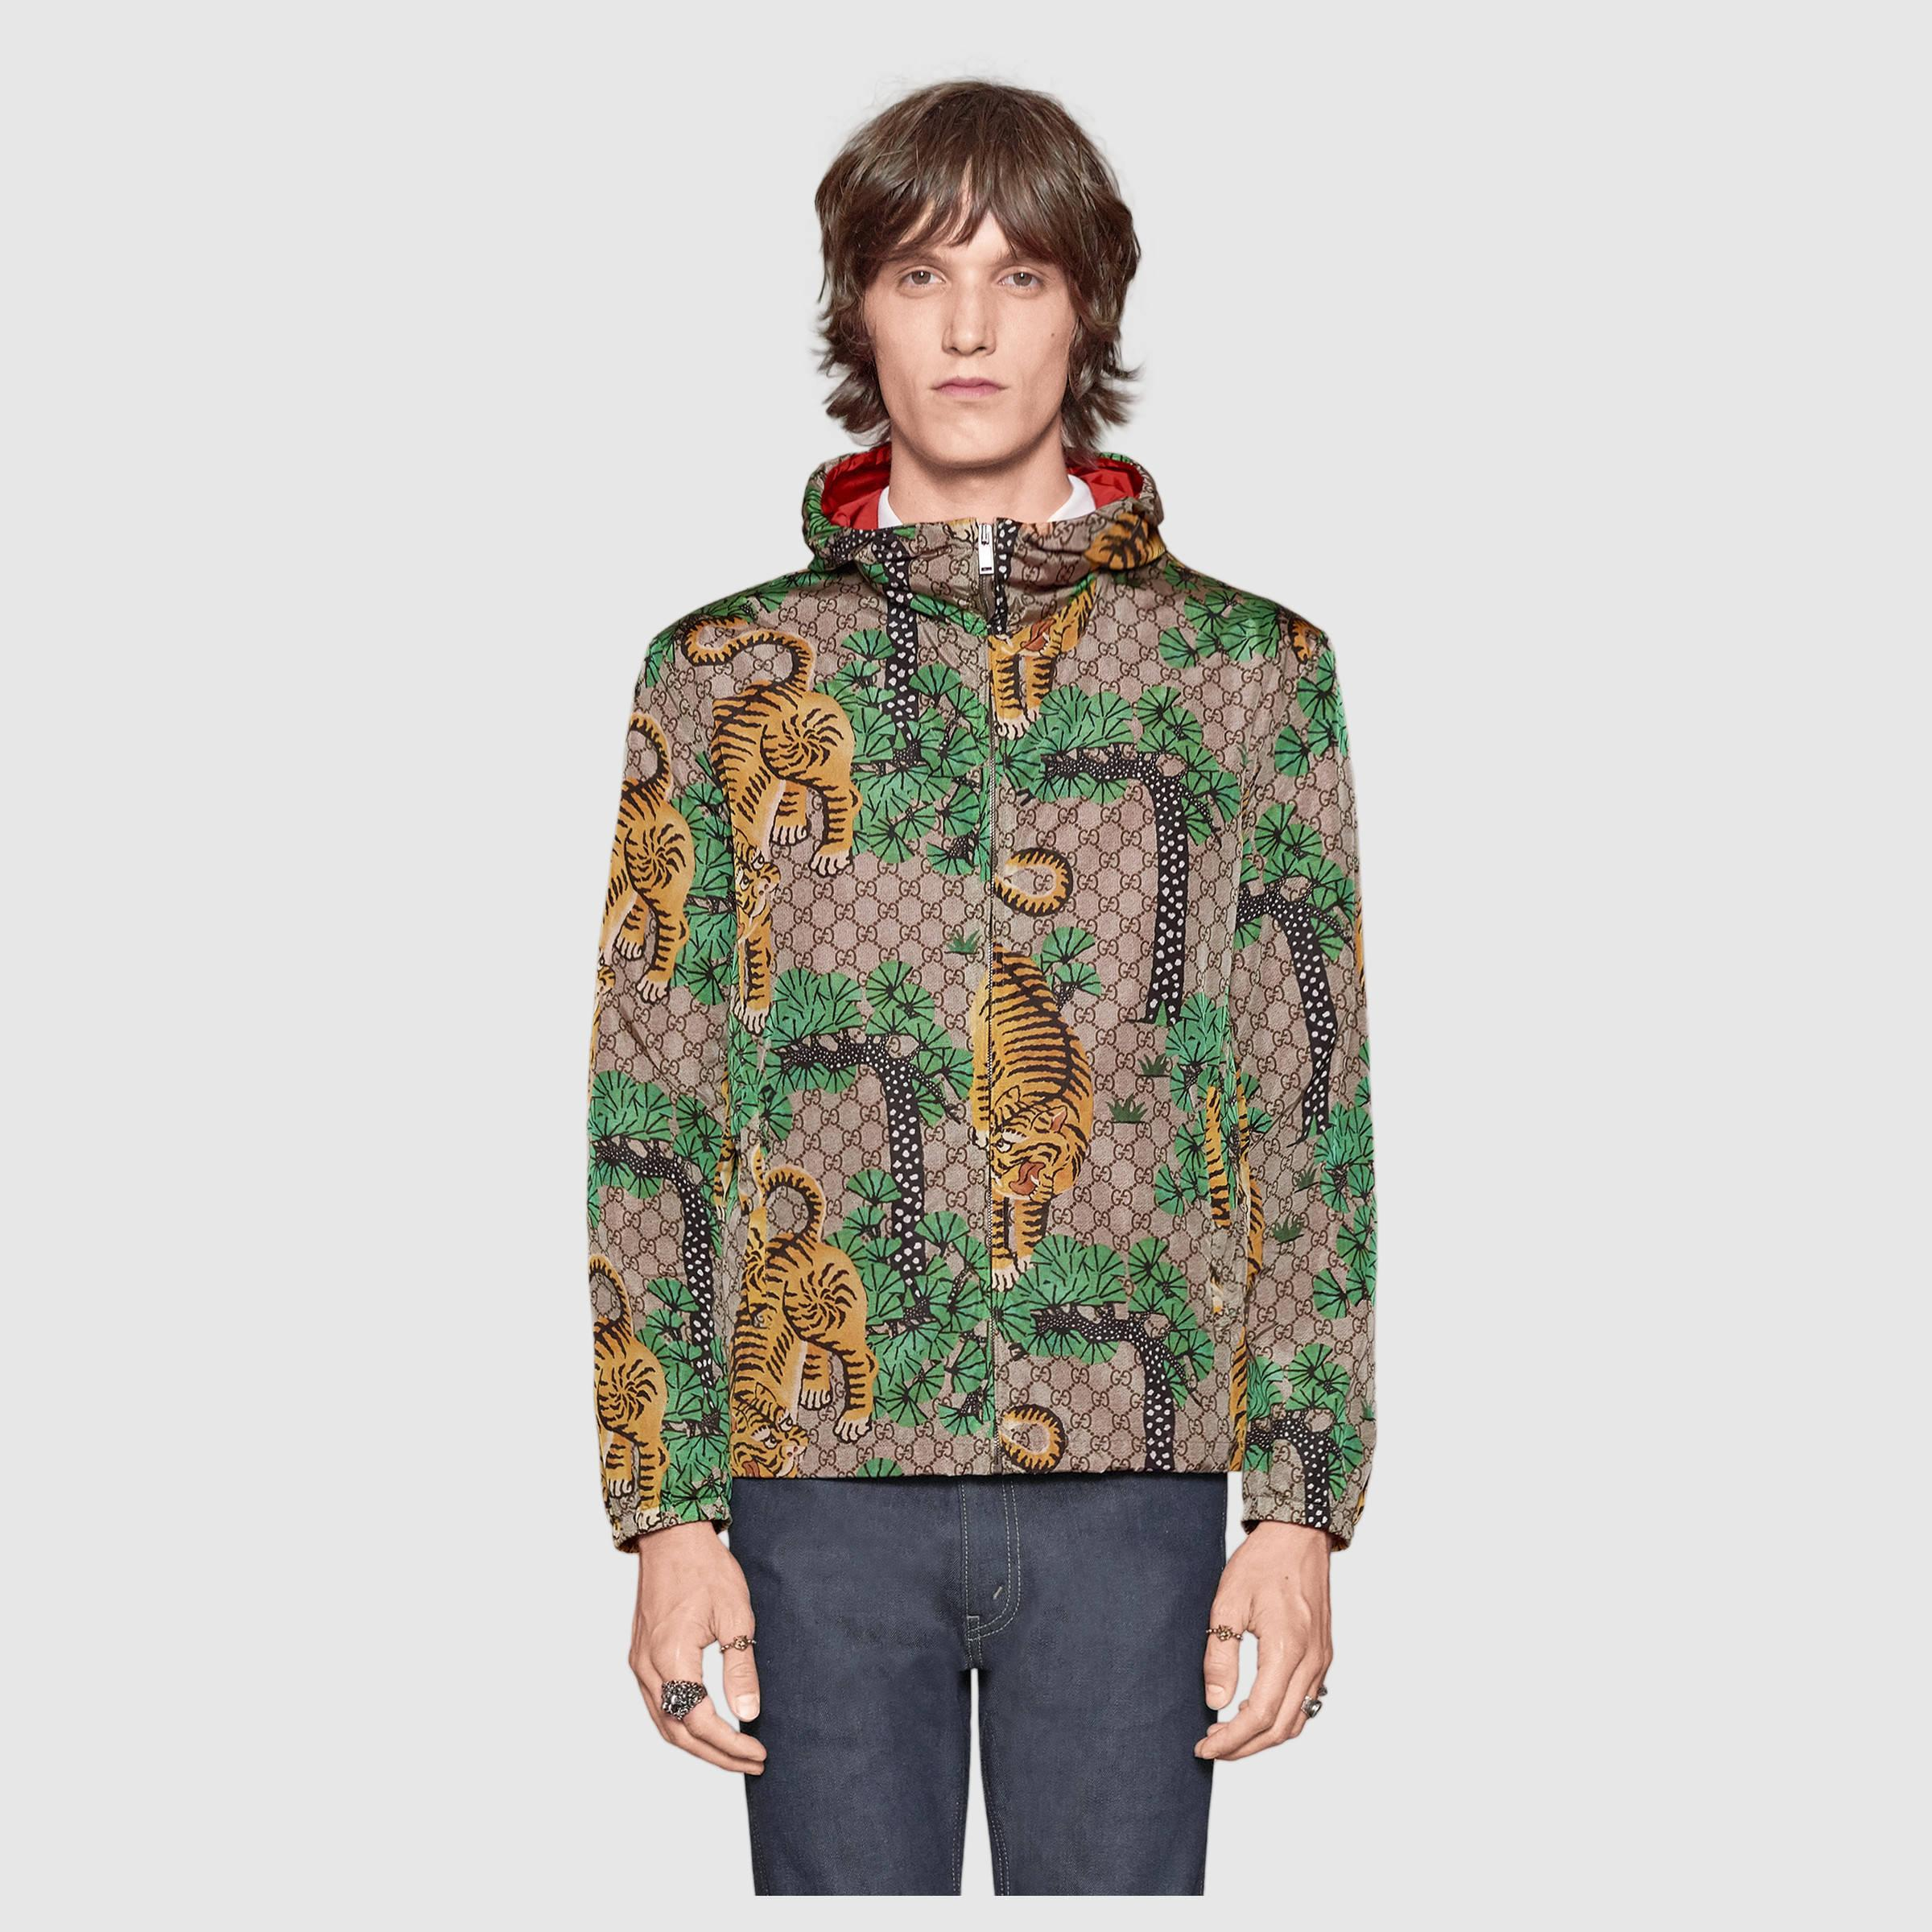 9cc6abaa323 Lyst - Gucci Bengal Print Nylon Jacket in Green for Men